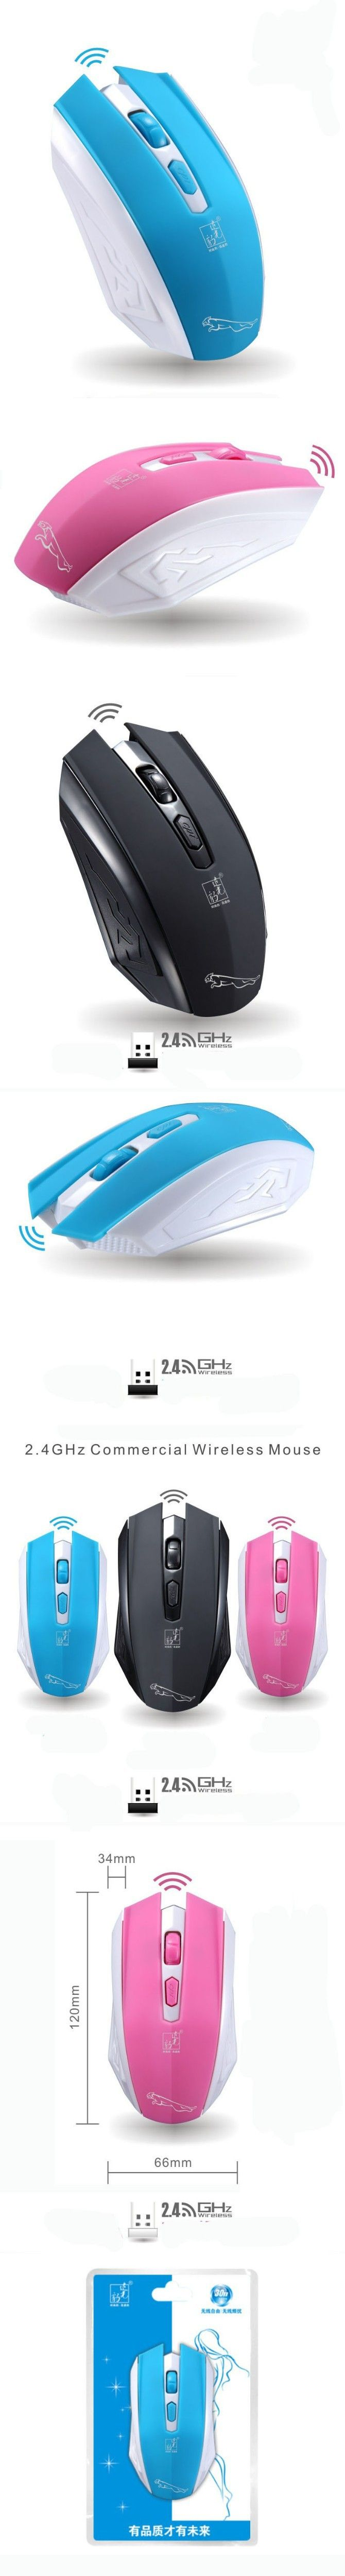 2015 New Mice Wireless Mouse Sem Fio Laptop 2.4Ghz Computer USB Receiver Cordless Gaming Mouse Gamer Brand Mause optico sem fio - http://www.pcbuild.guru/products/2015-new-mice-wireless-mouse-sem-fio-laptop-2-4ghz-computer-usb-receiver-cordless-gaming-mouse-gamer-brand-mause-optico-sem-fio/